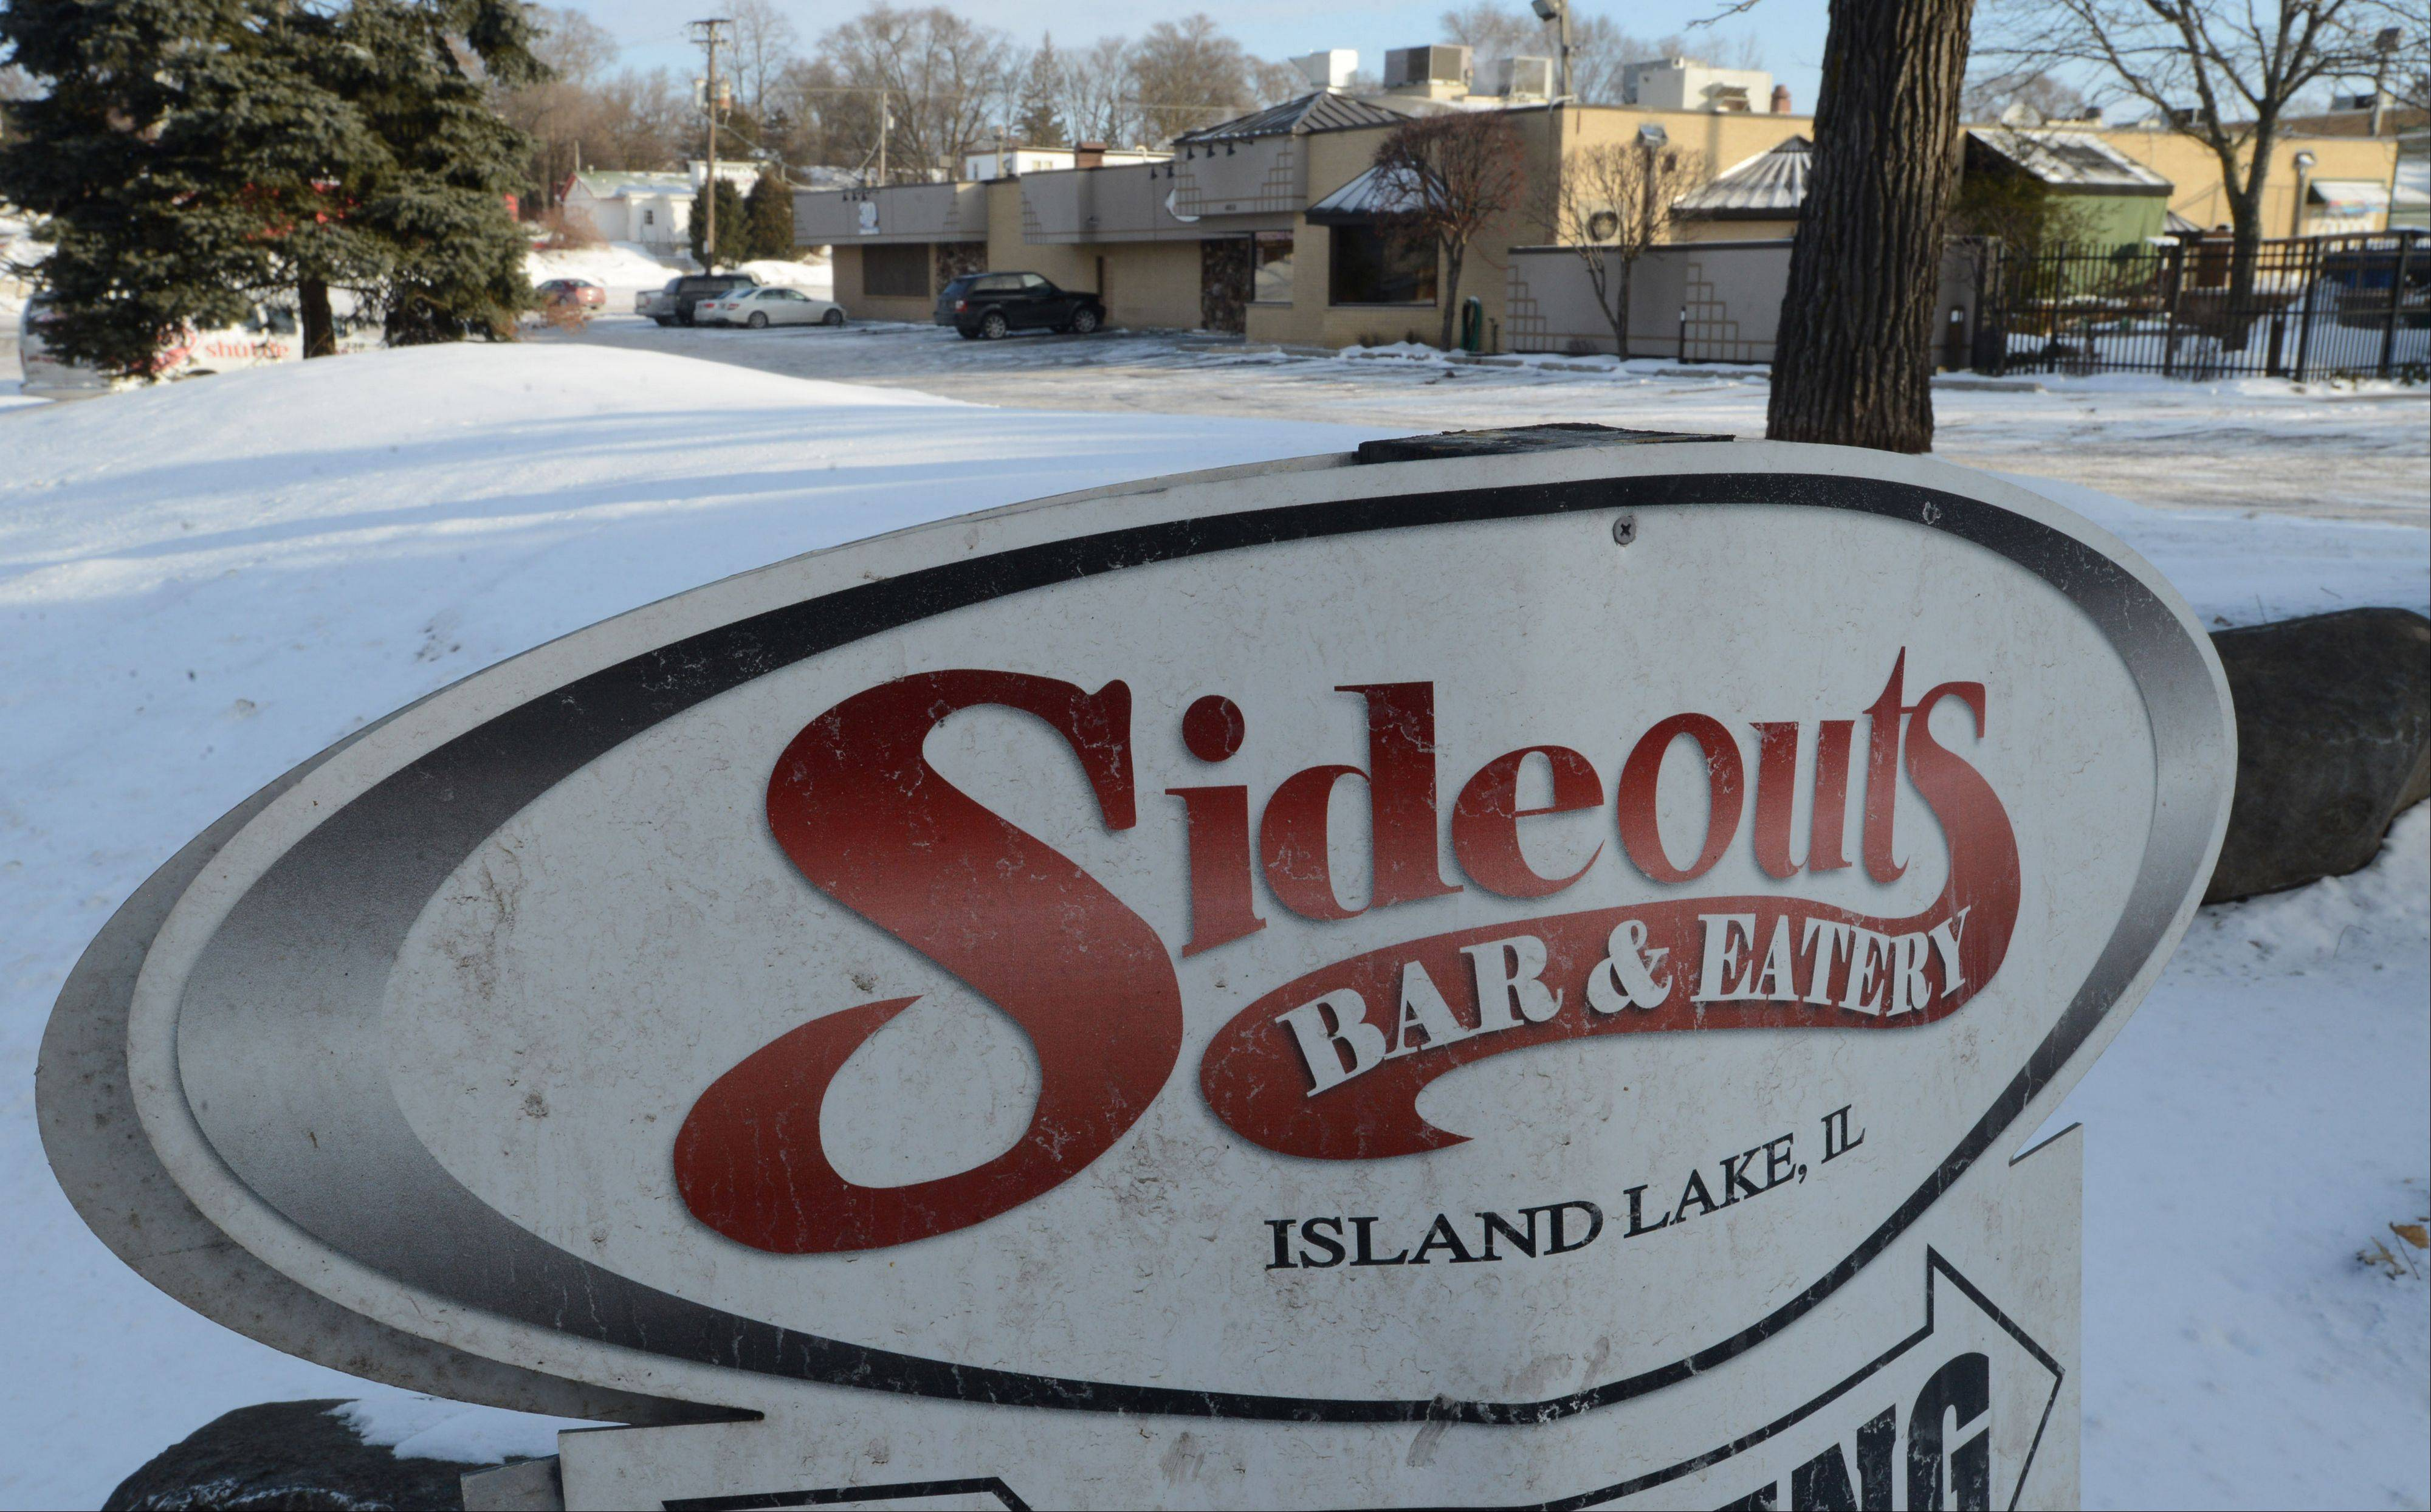 Jerry DeLaurentis, owner of Sideouts Bar & Eatery in Island Lake, wants video gambling machines in his business and is angry about the village's ban.